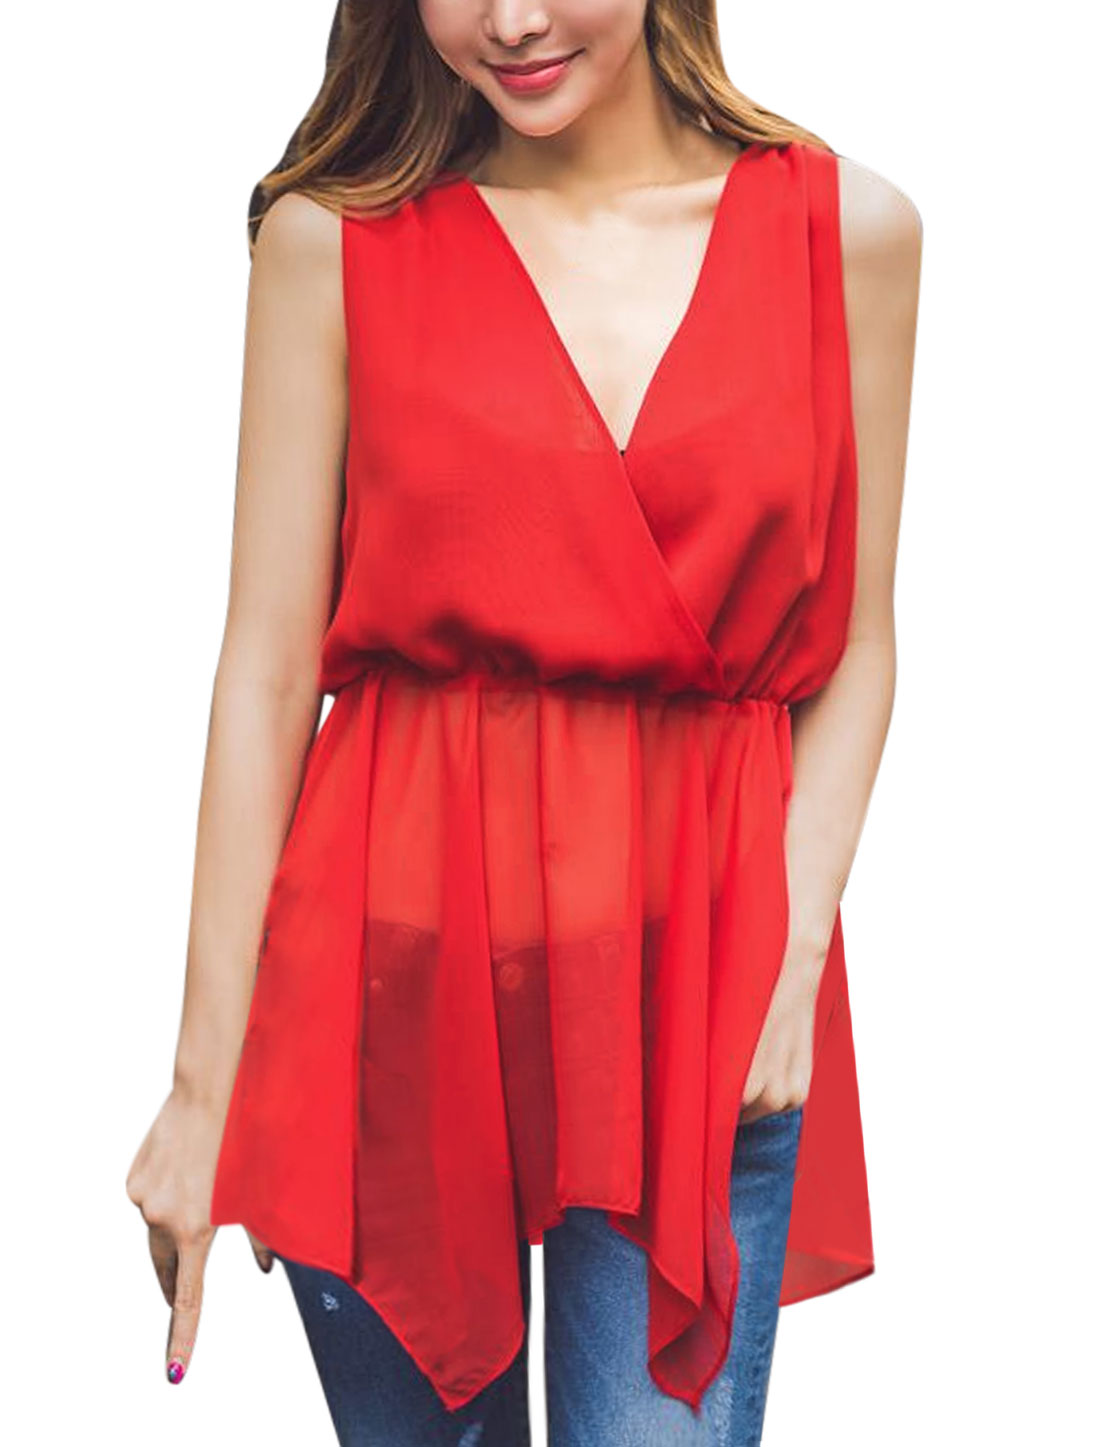 Women Crossover V Neck Elastic Waist Asymmetric Hem Chiffon Blouse Red S